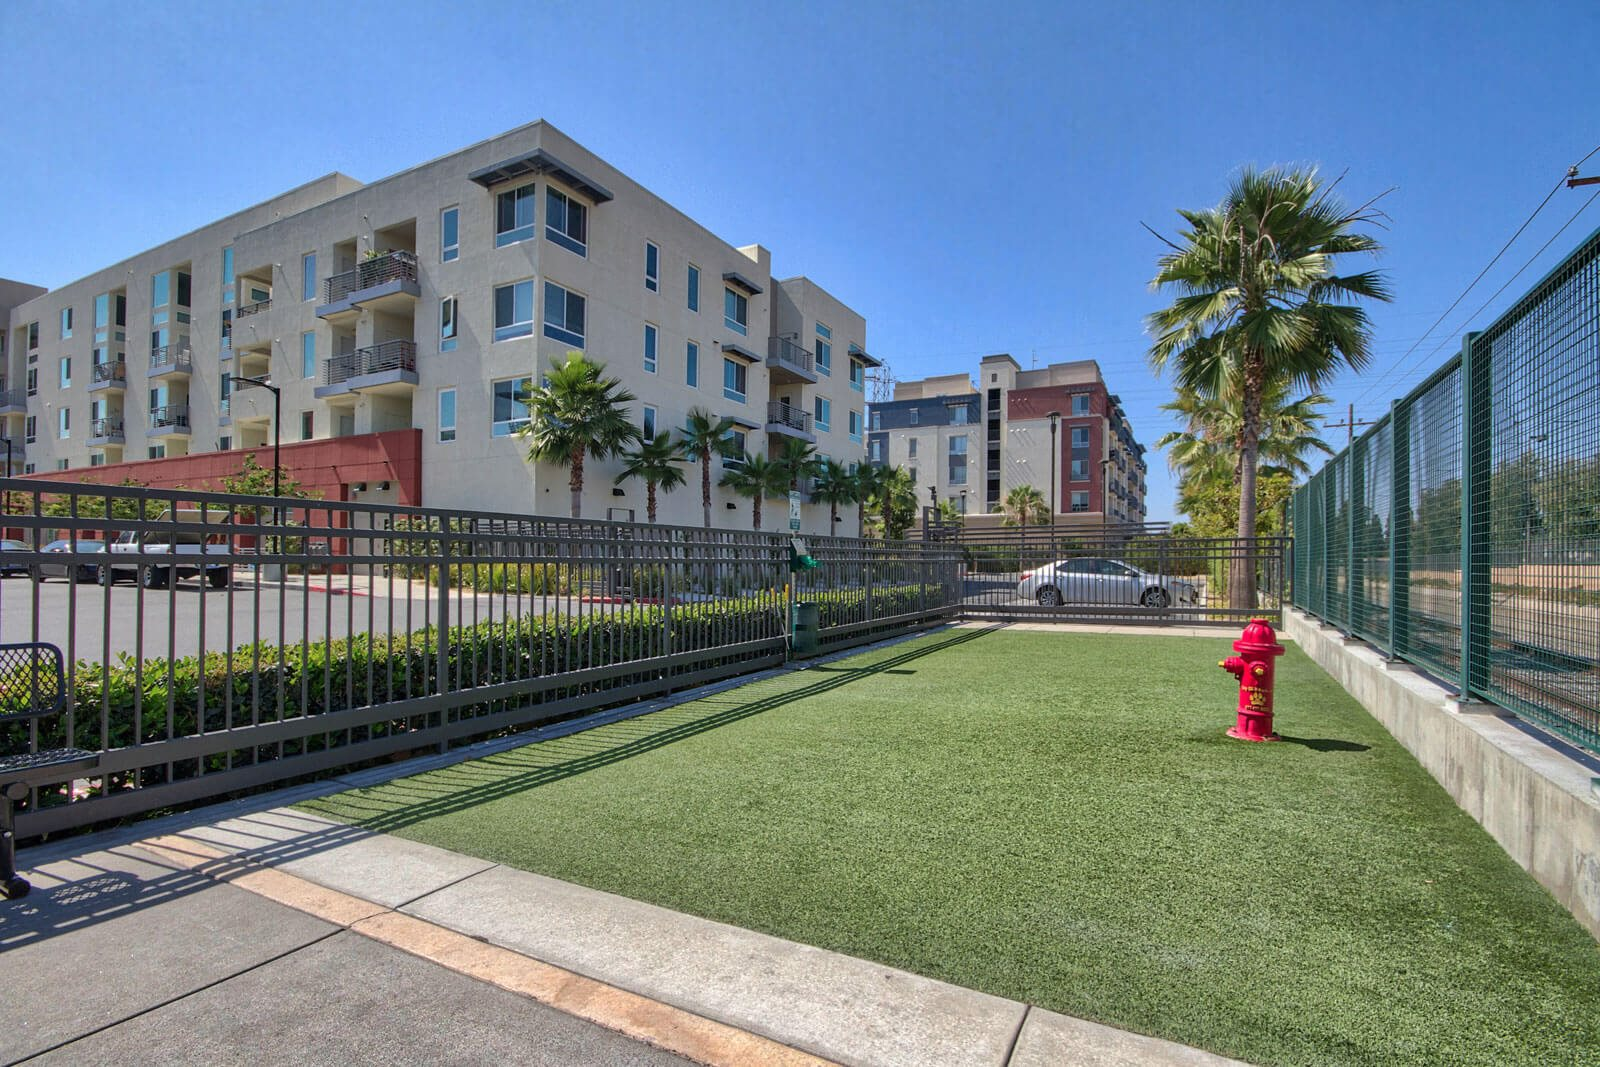 Pet-Friendly Community with Dog Park at Boardwalk by Windsor, 7461 Edinger Ave., CA